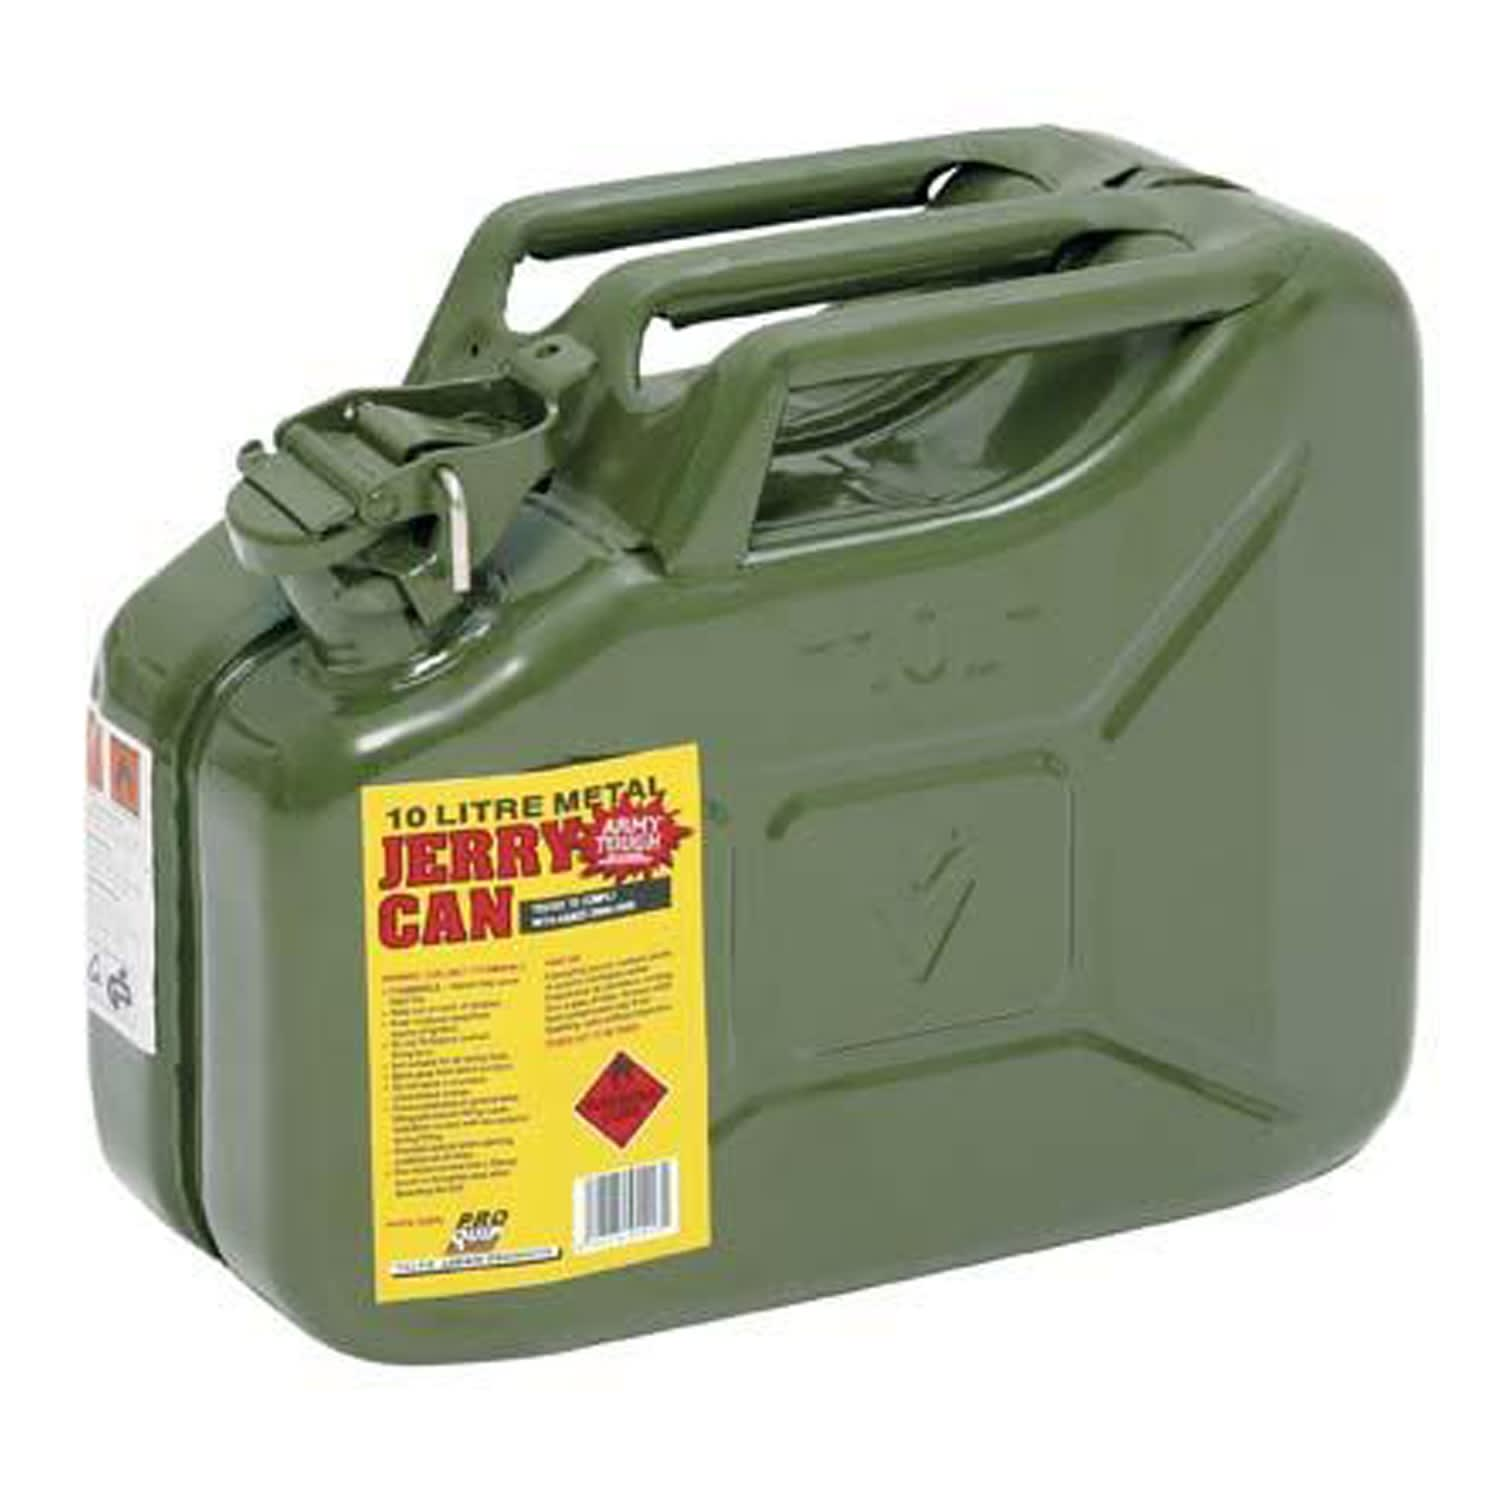 Pro Quip 10L Metal Petrol Jerry Can